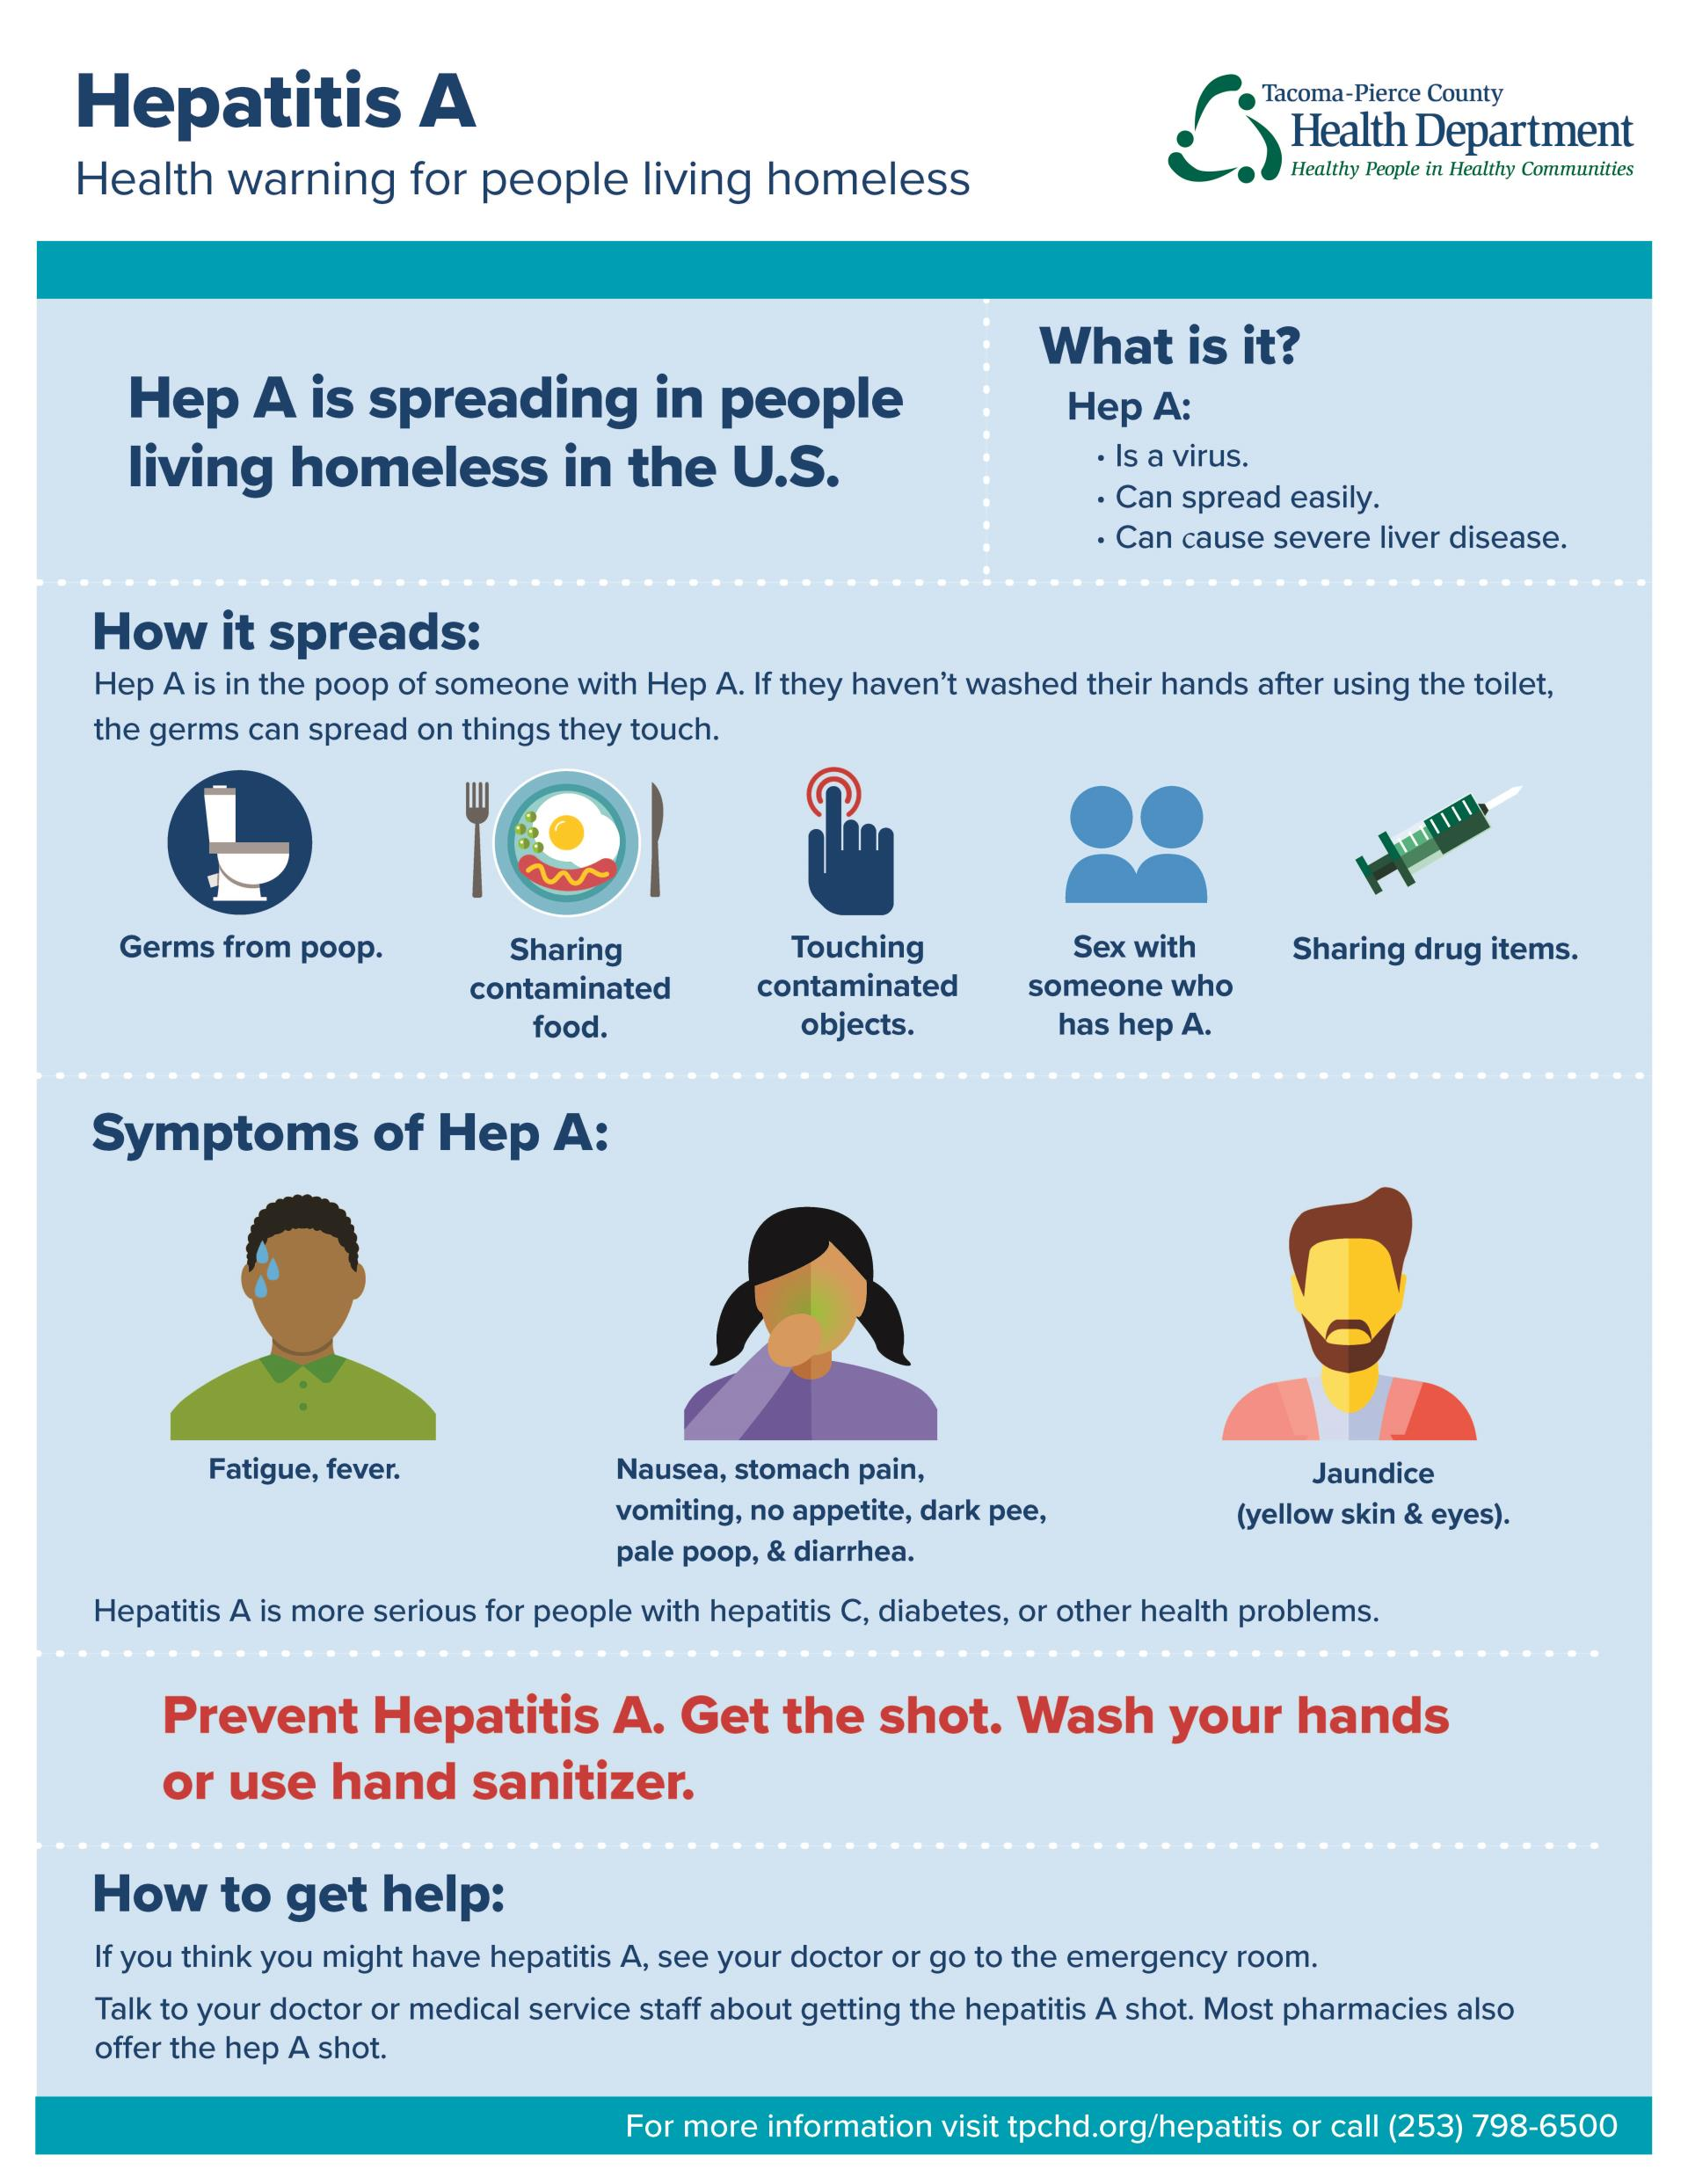 An infographic that shows what hepatitis A is, how it spreads, and now to protect against it.